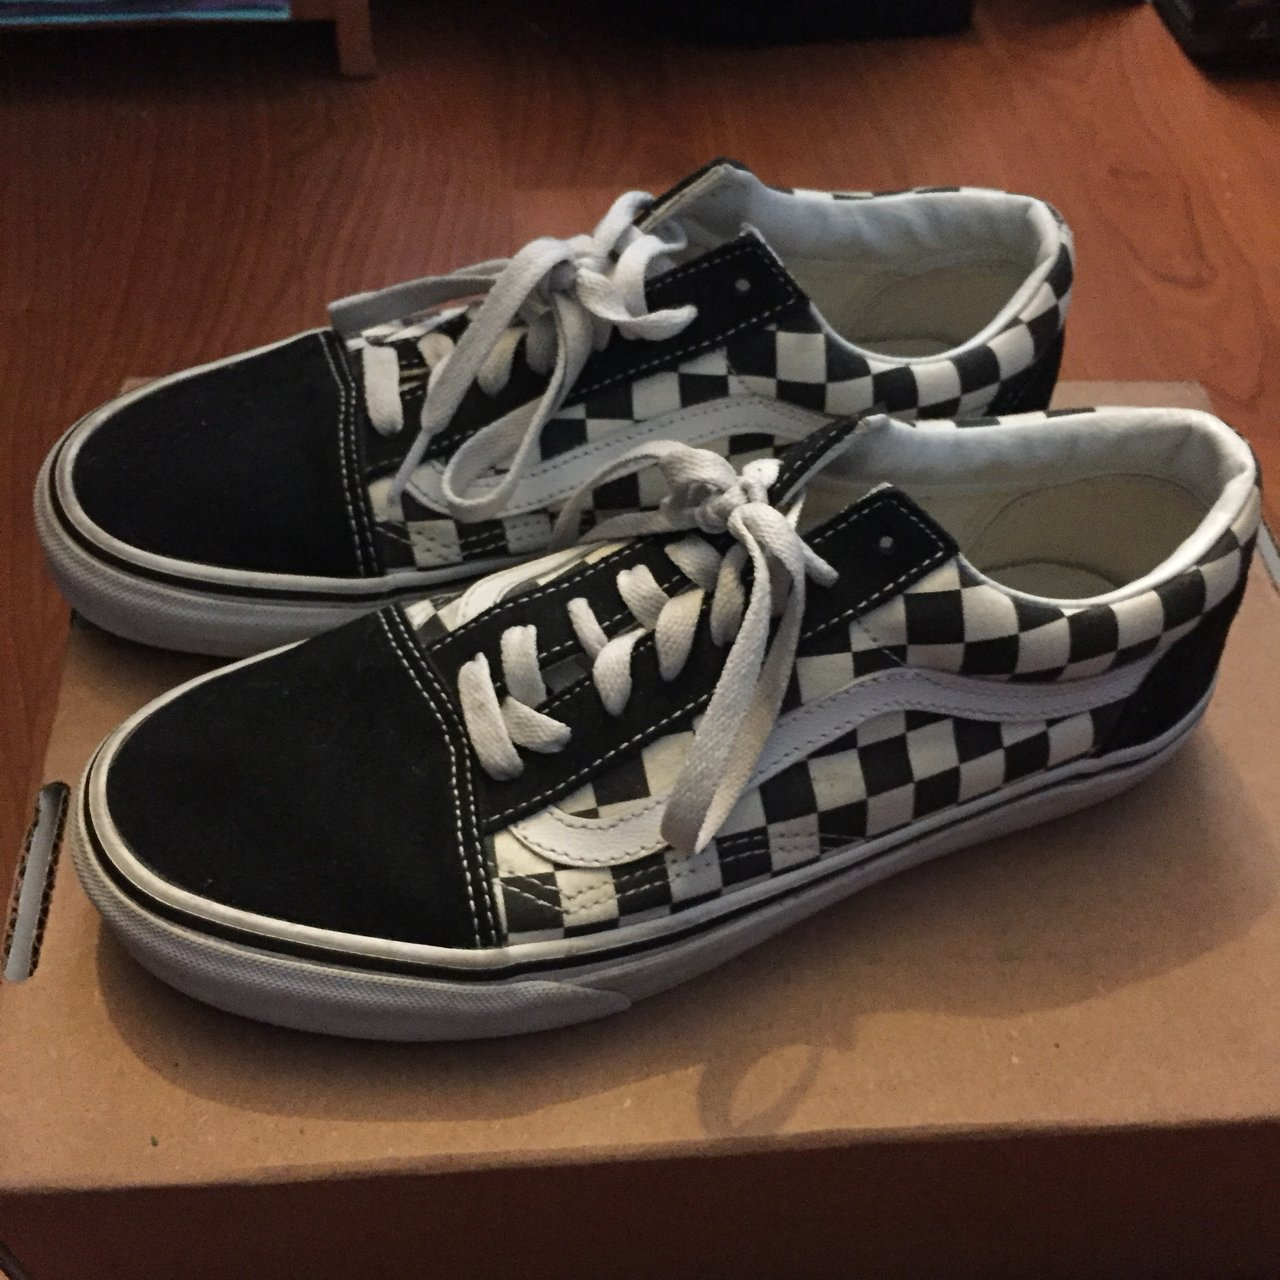 f0066cdfc82279 Vans Checkered   Checkerboard Old Skool Shoes in black and 8 - Depop